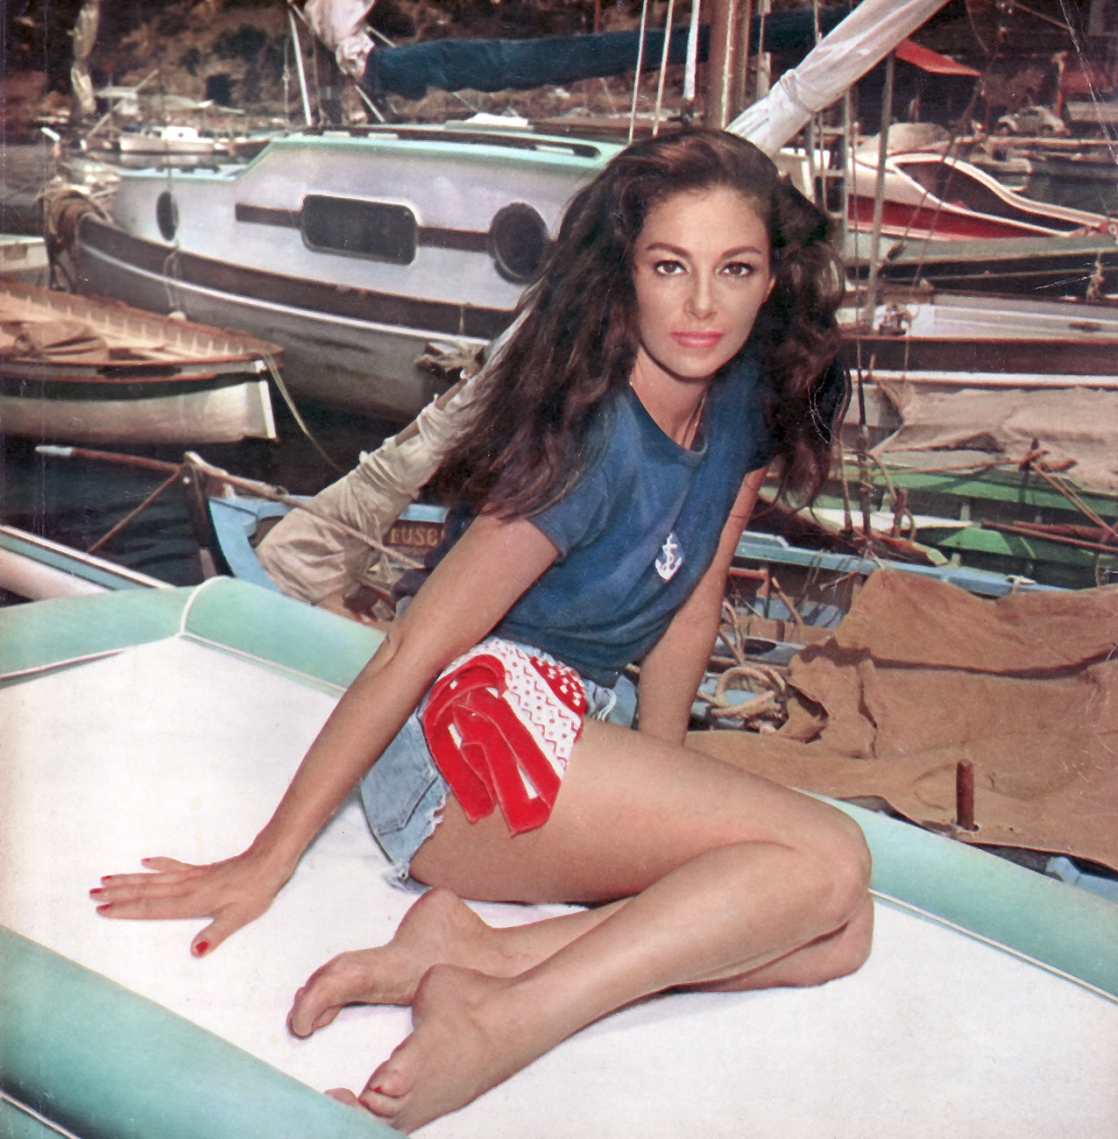 Pier Angeli HQ wallpapers